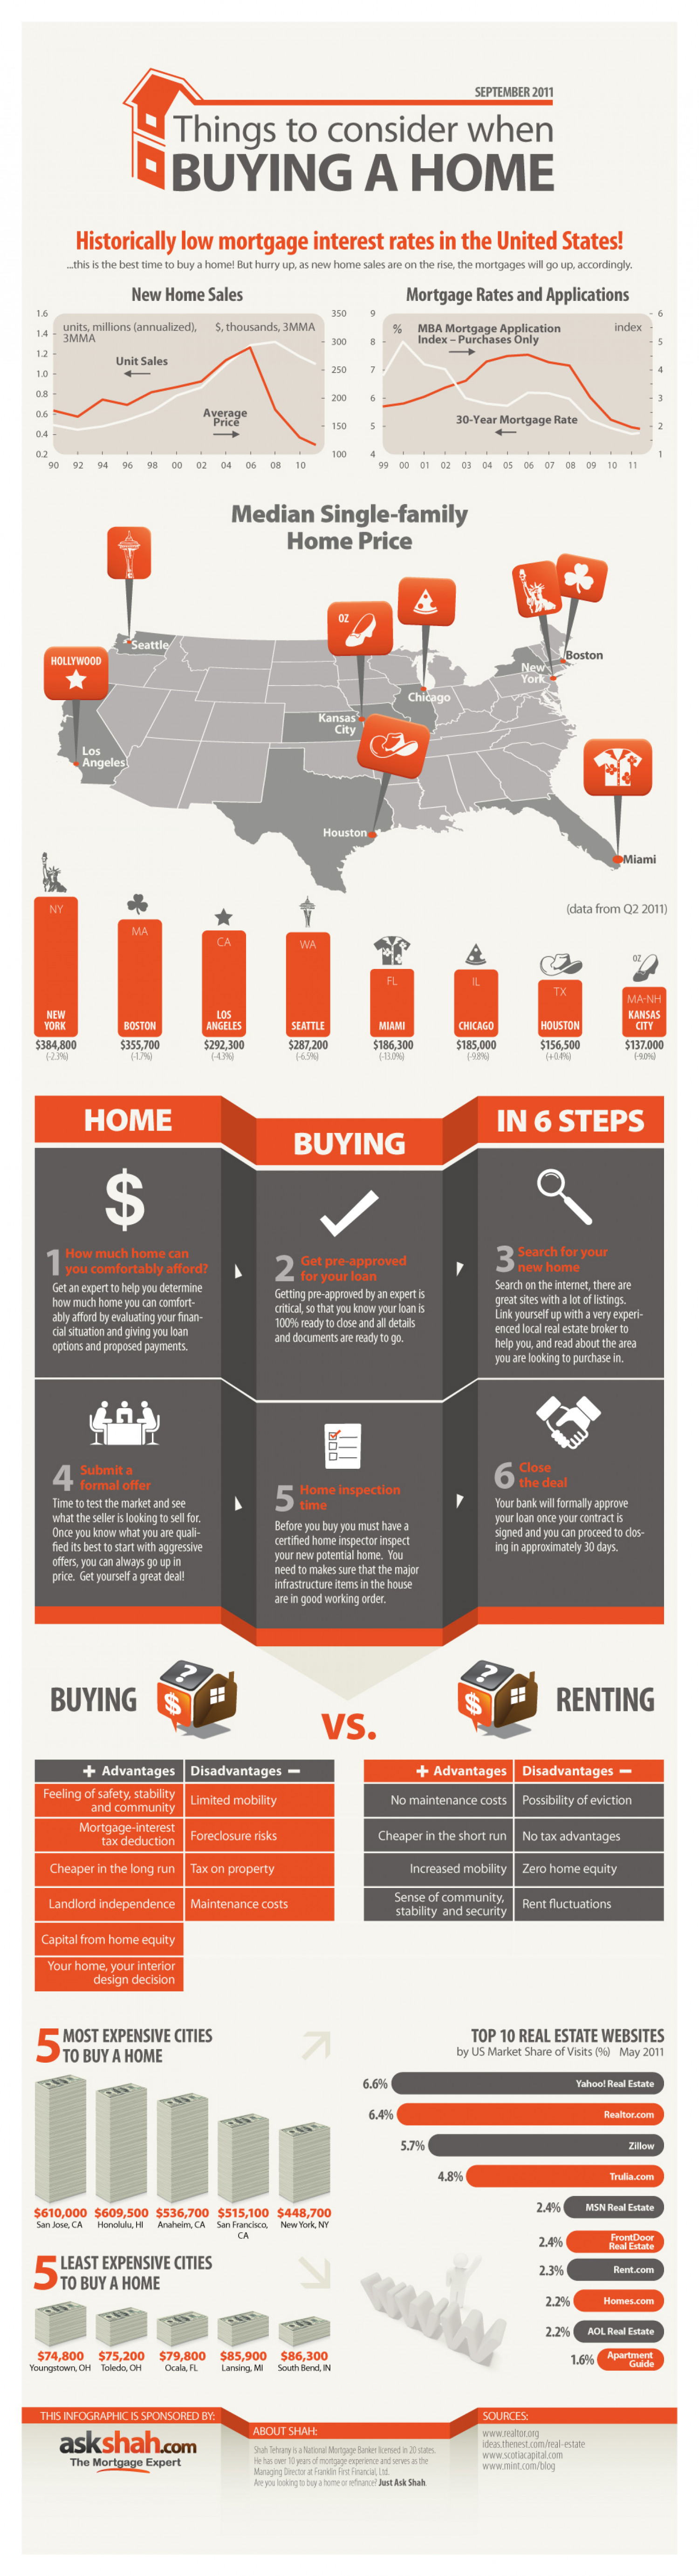 Things to Consider When Buying a Home Infographic